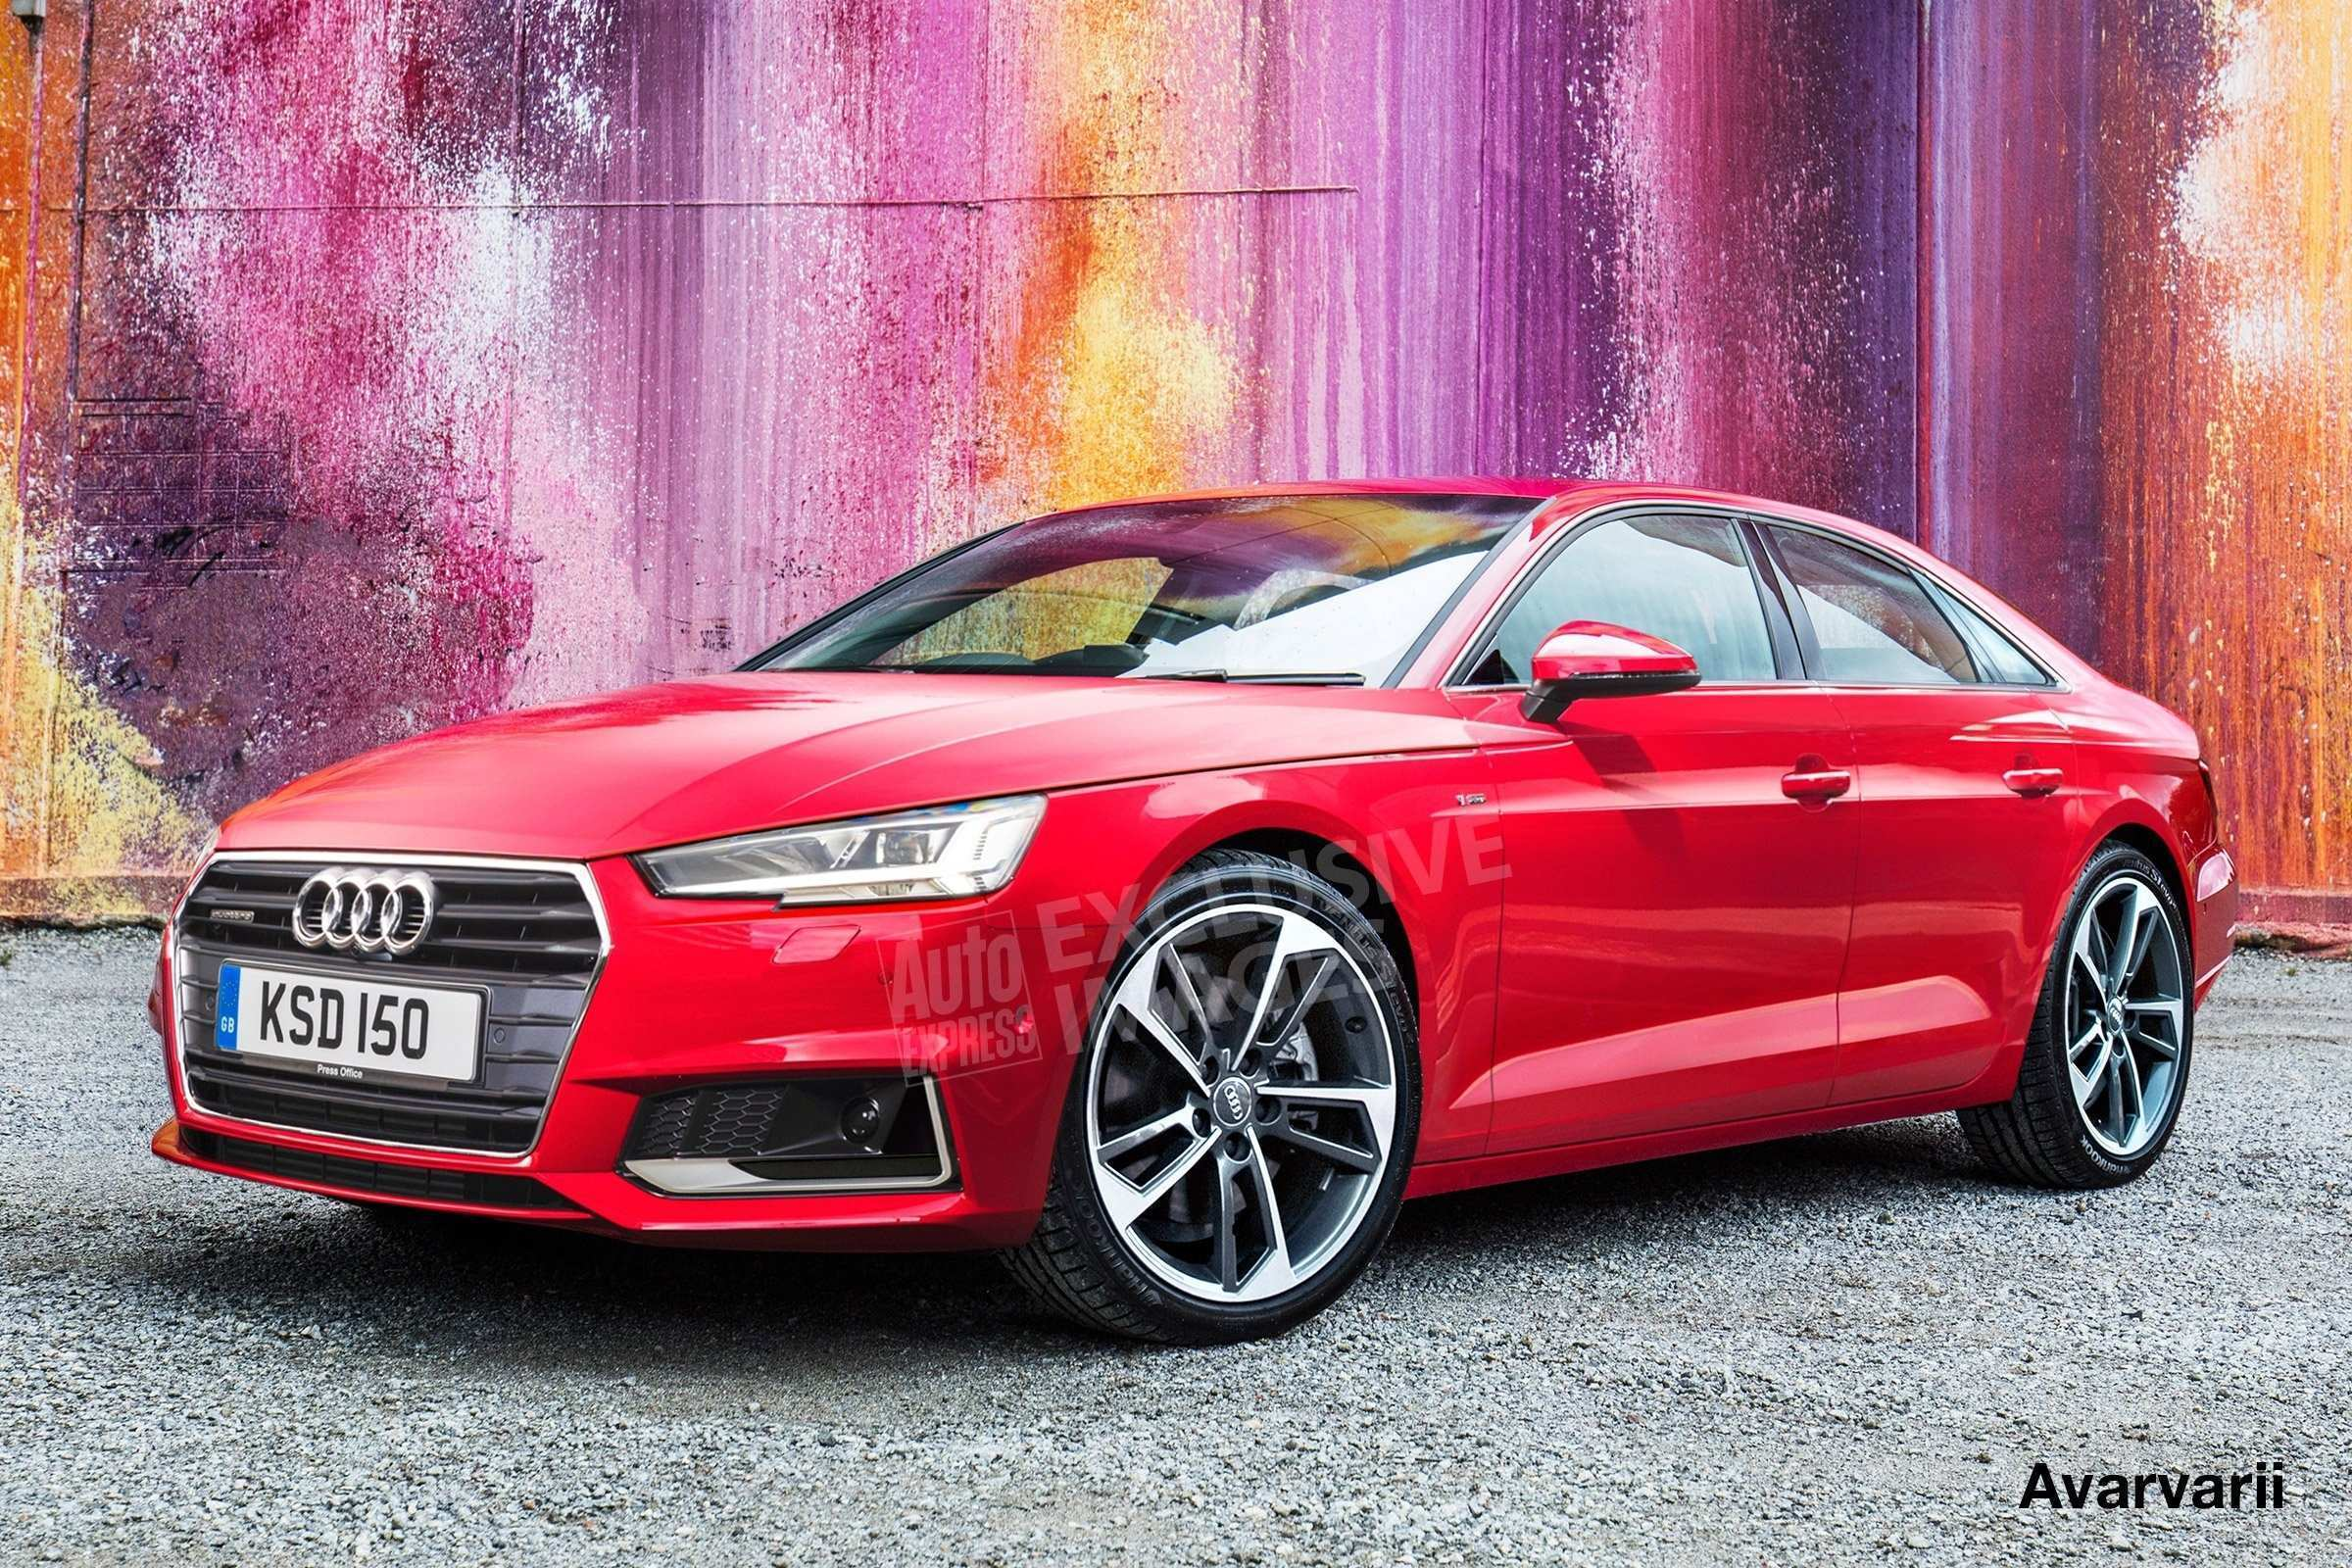 2020 Audi A3 Review.16 Best 2020 Audi A3 Rumors Review Cars 2020